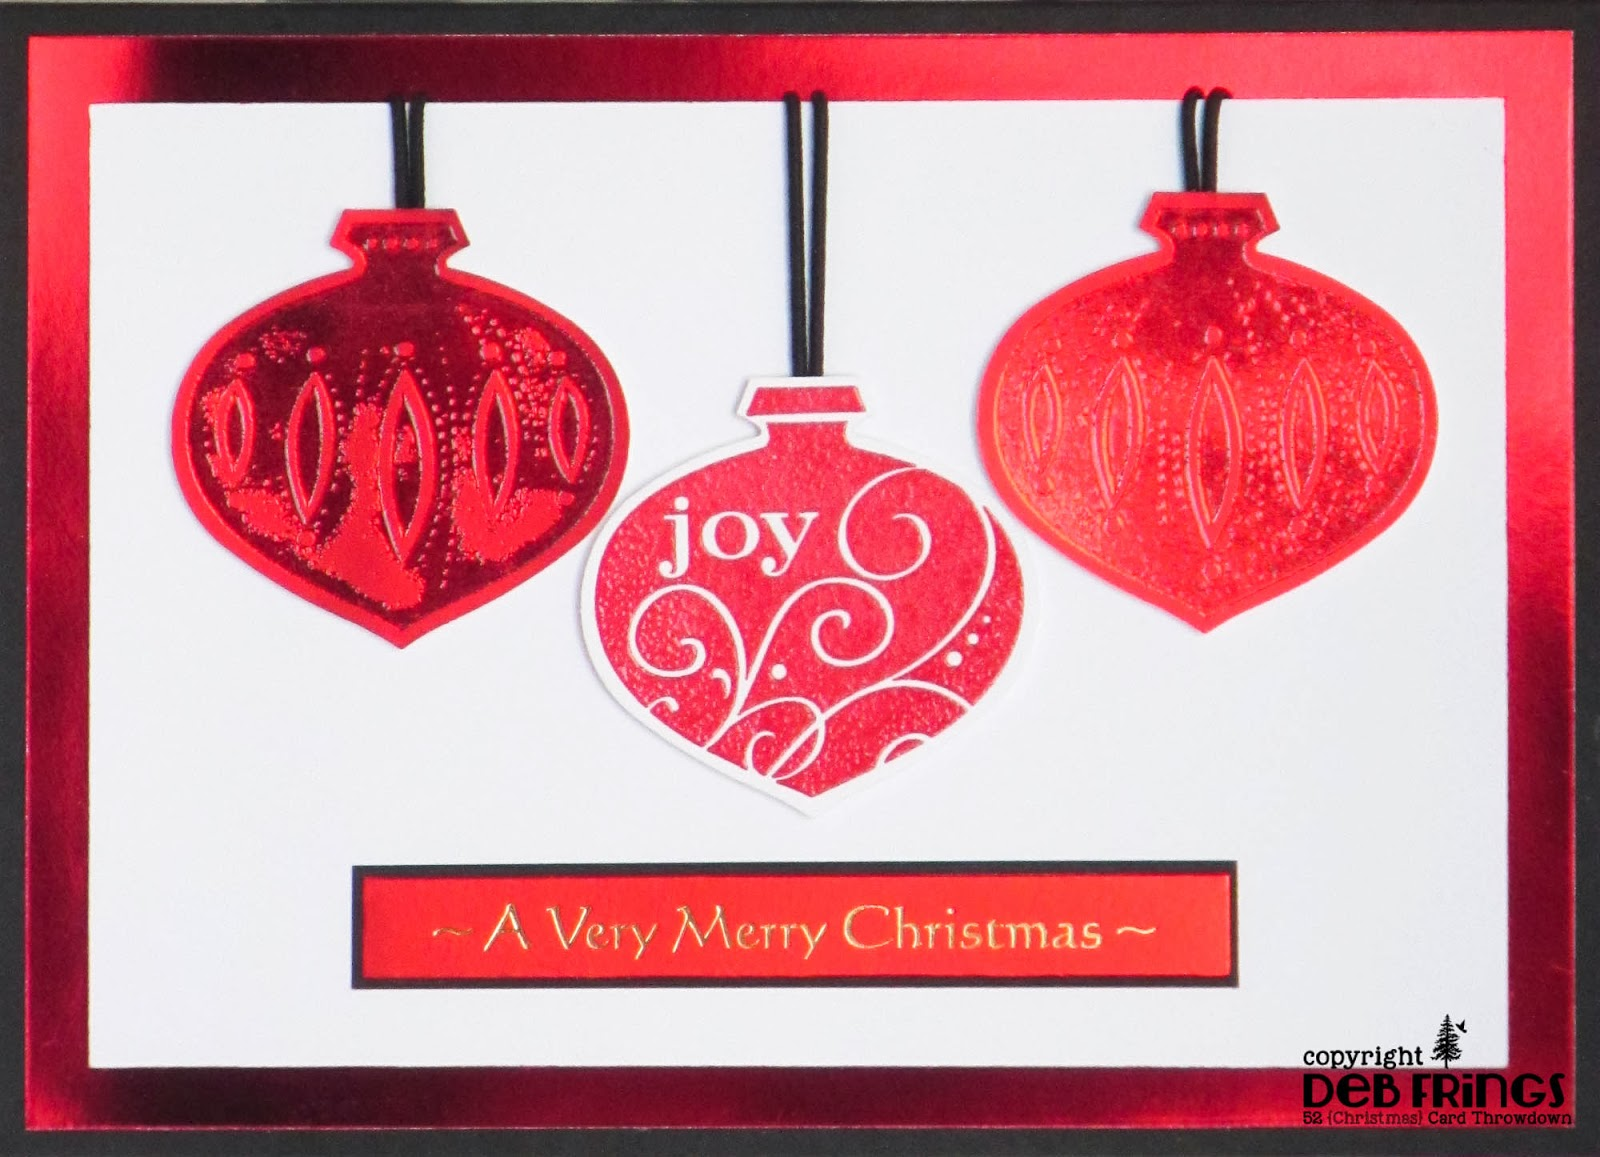 Merry Christmas - photo by Deborah Frings - Deborah's Gems